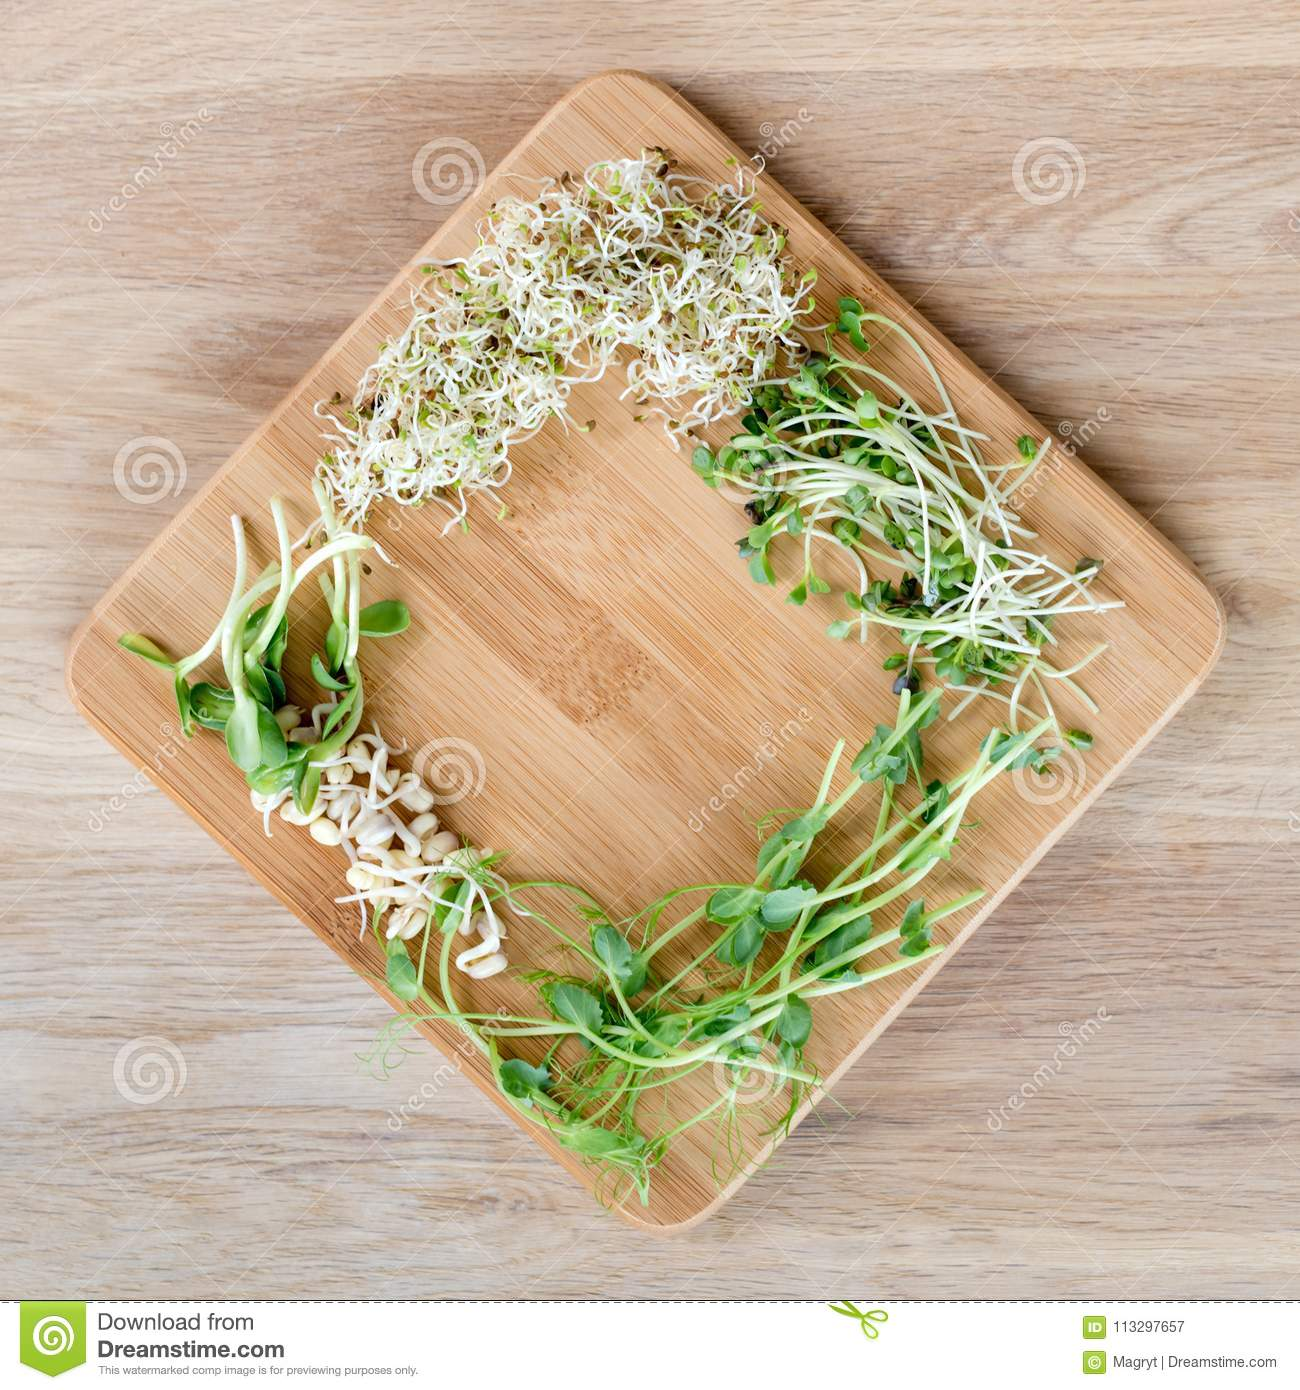 Different Types Of Micro Greens On Wooden Background Fresh Garden